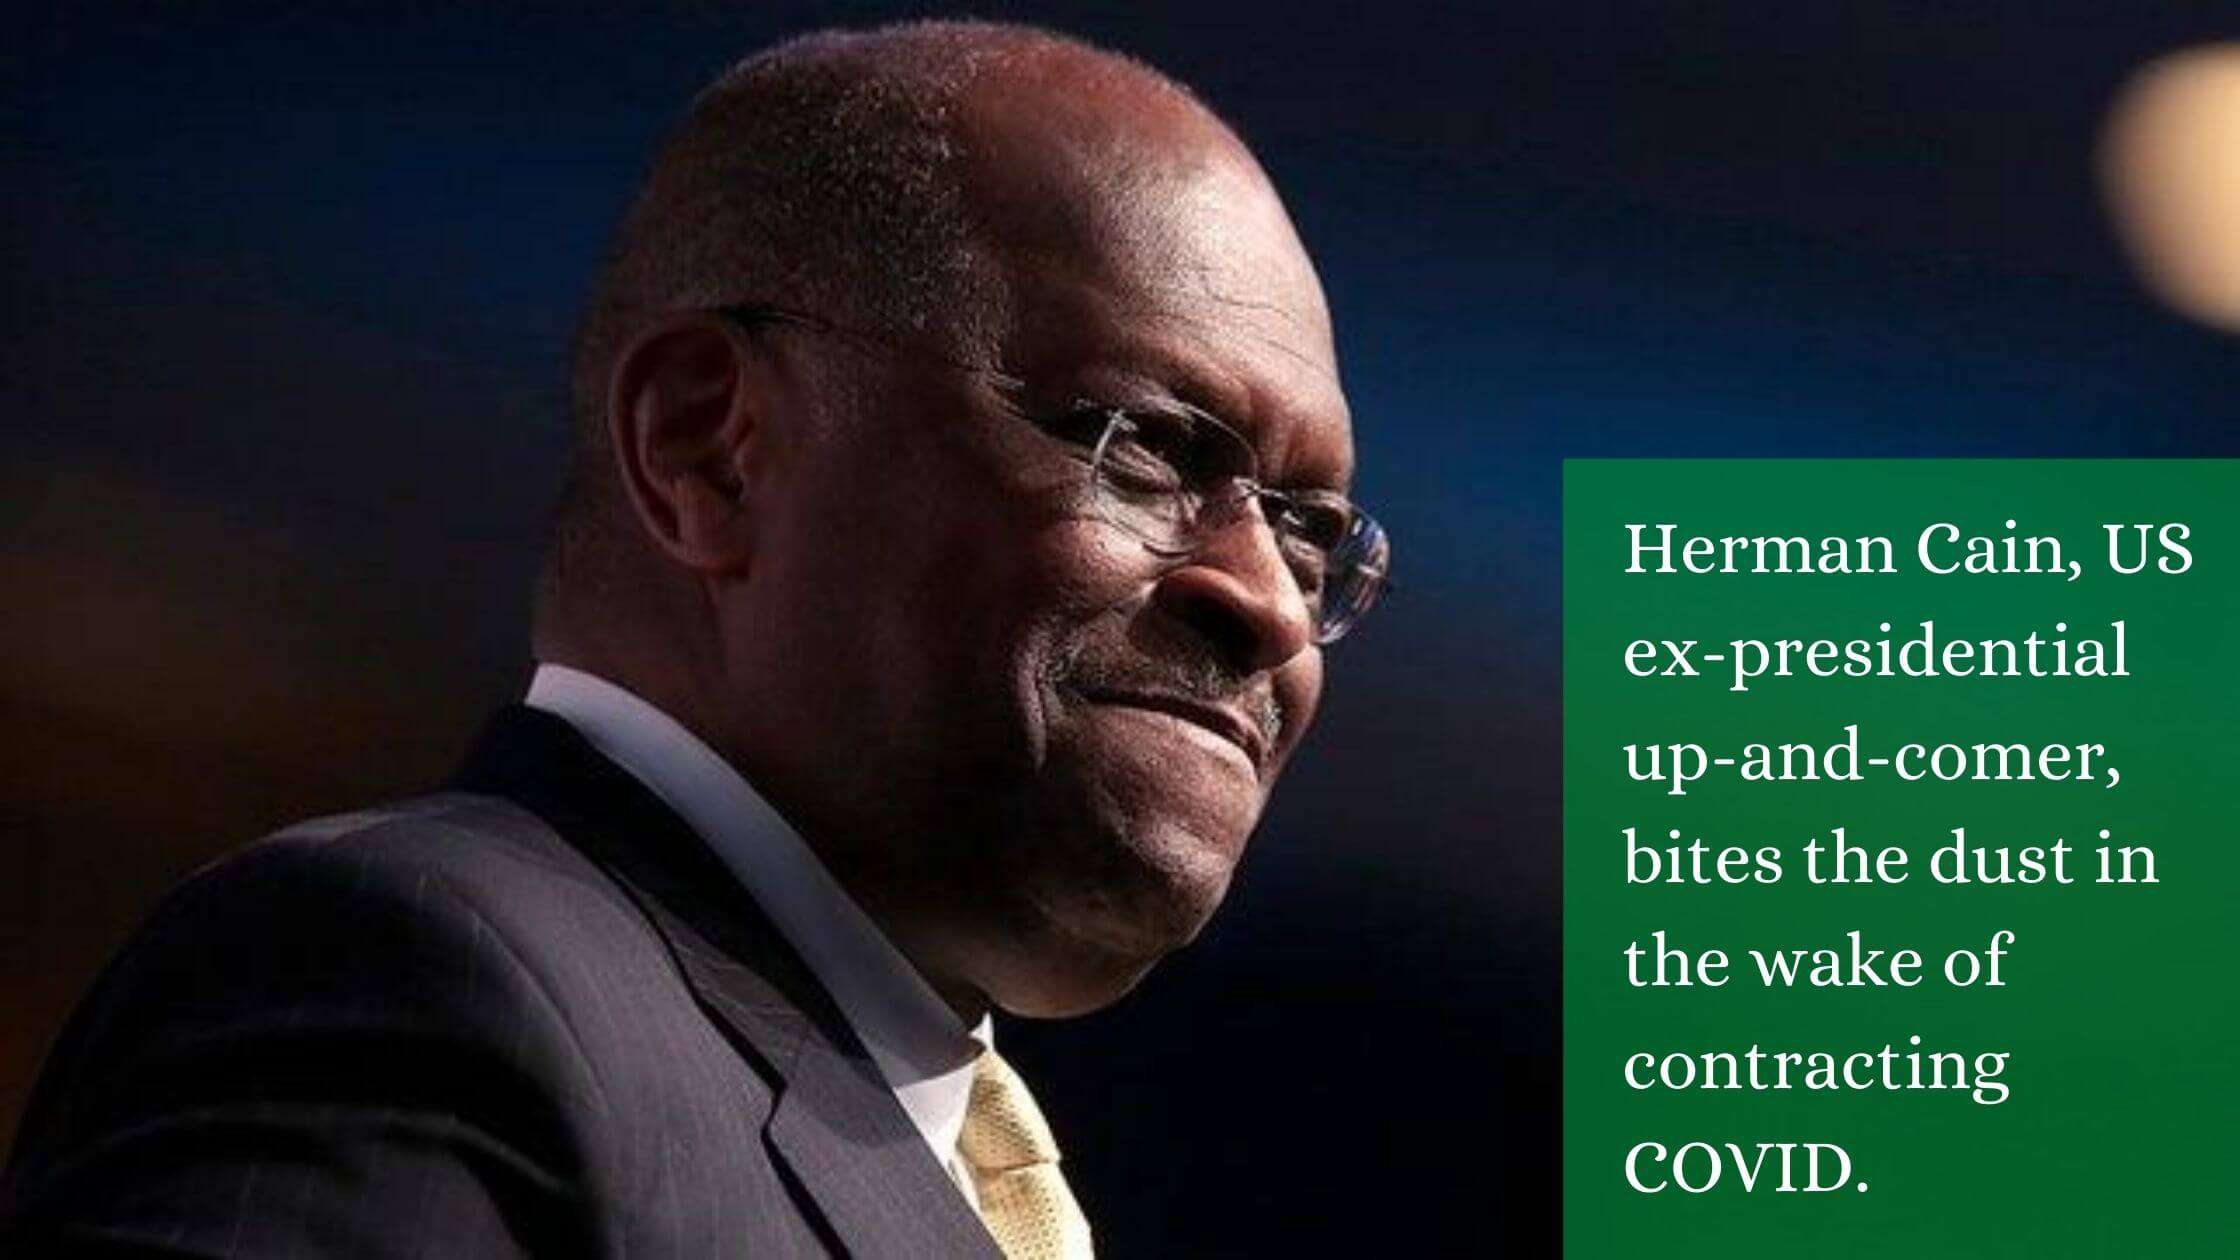 Herman Cain, US ex-presidential up-and-comer, bites the dust in the wake of contracting COVID.